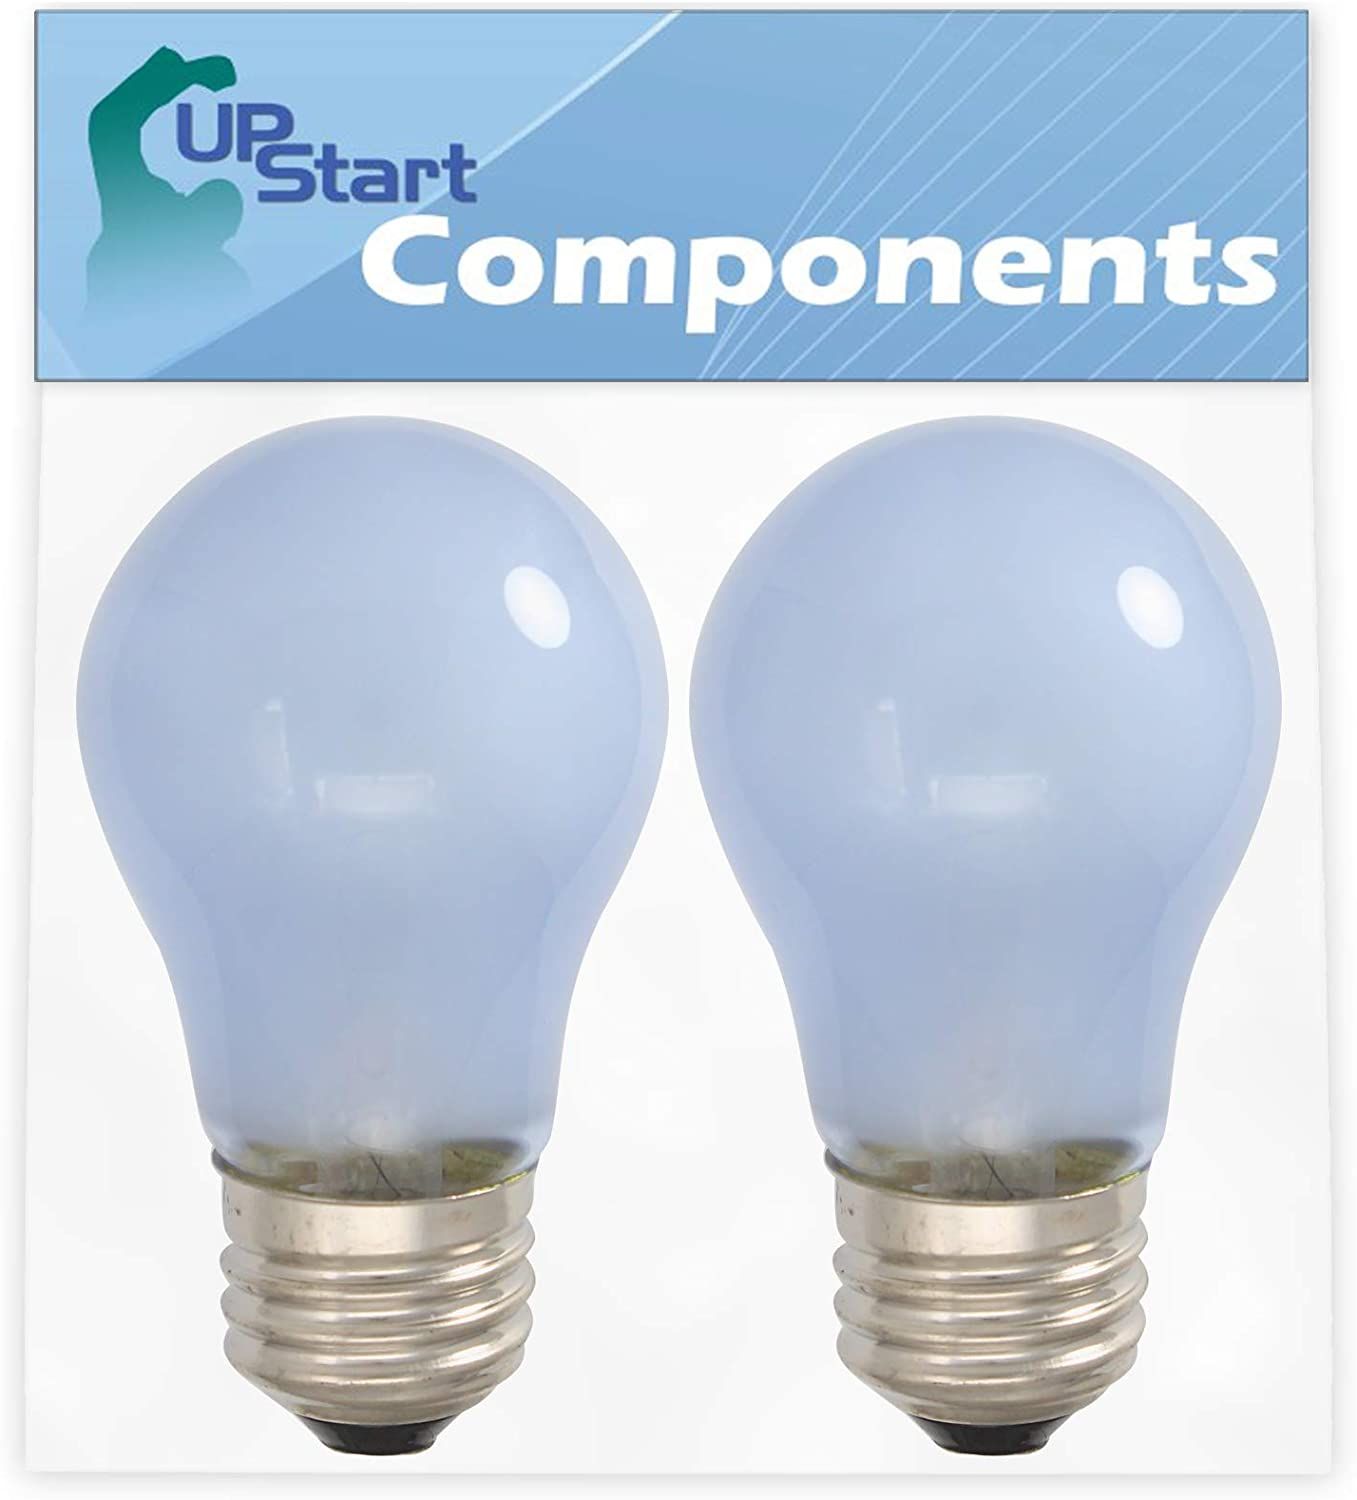 AH977006 Compatible with Frigidaire 241555401 /& Part Number AP3763141 1056583 2-Pack 241555401 Refrigerator Light Bulb Replacement for Frigidaire Refrigerators EA977006 PS977006